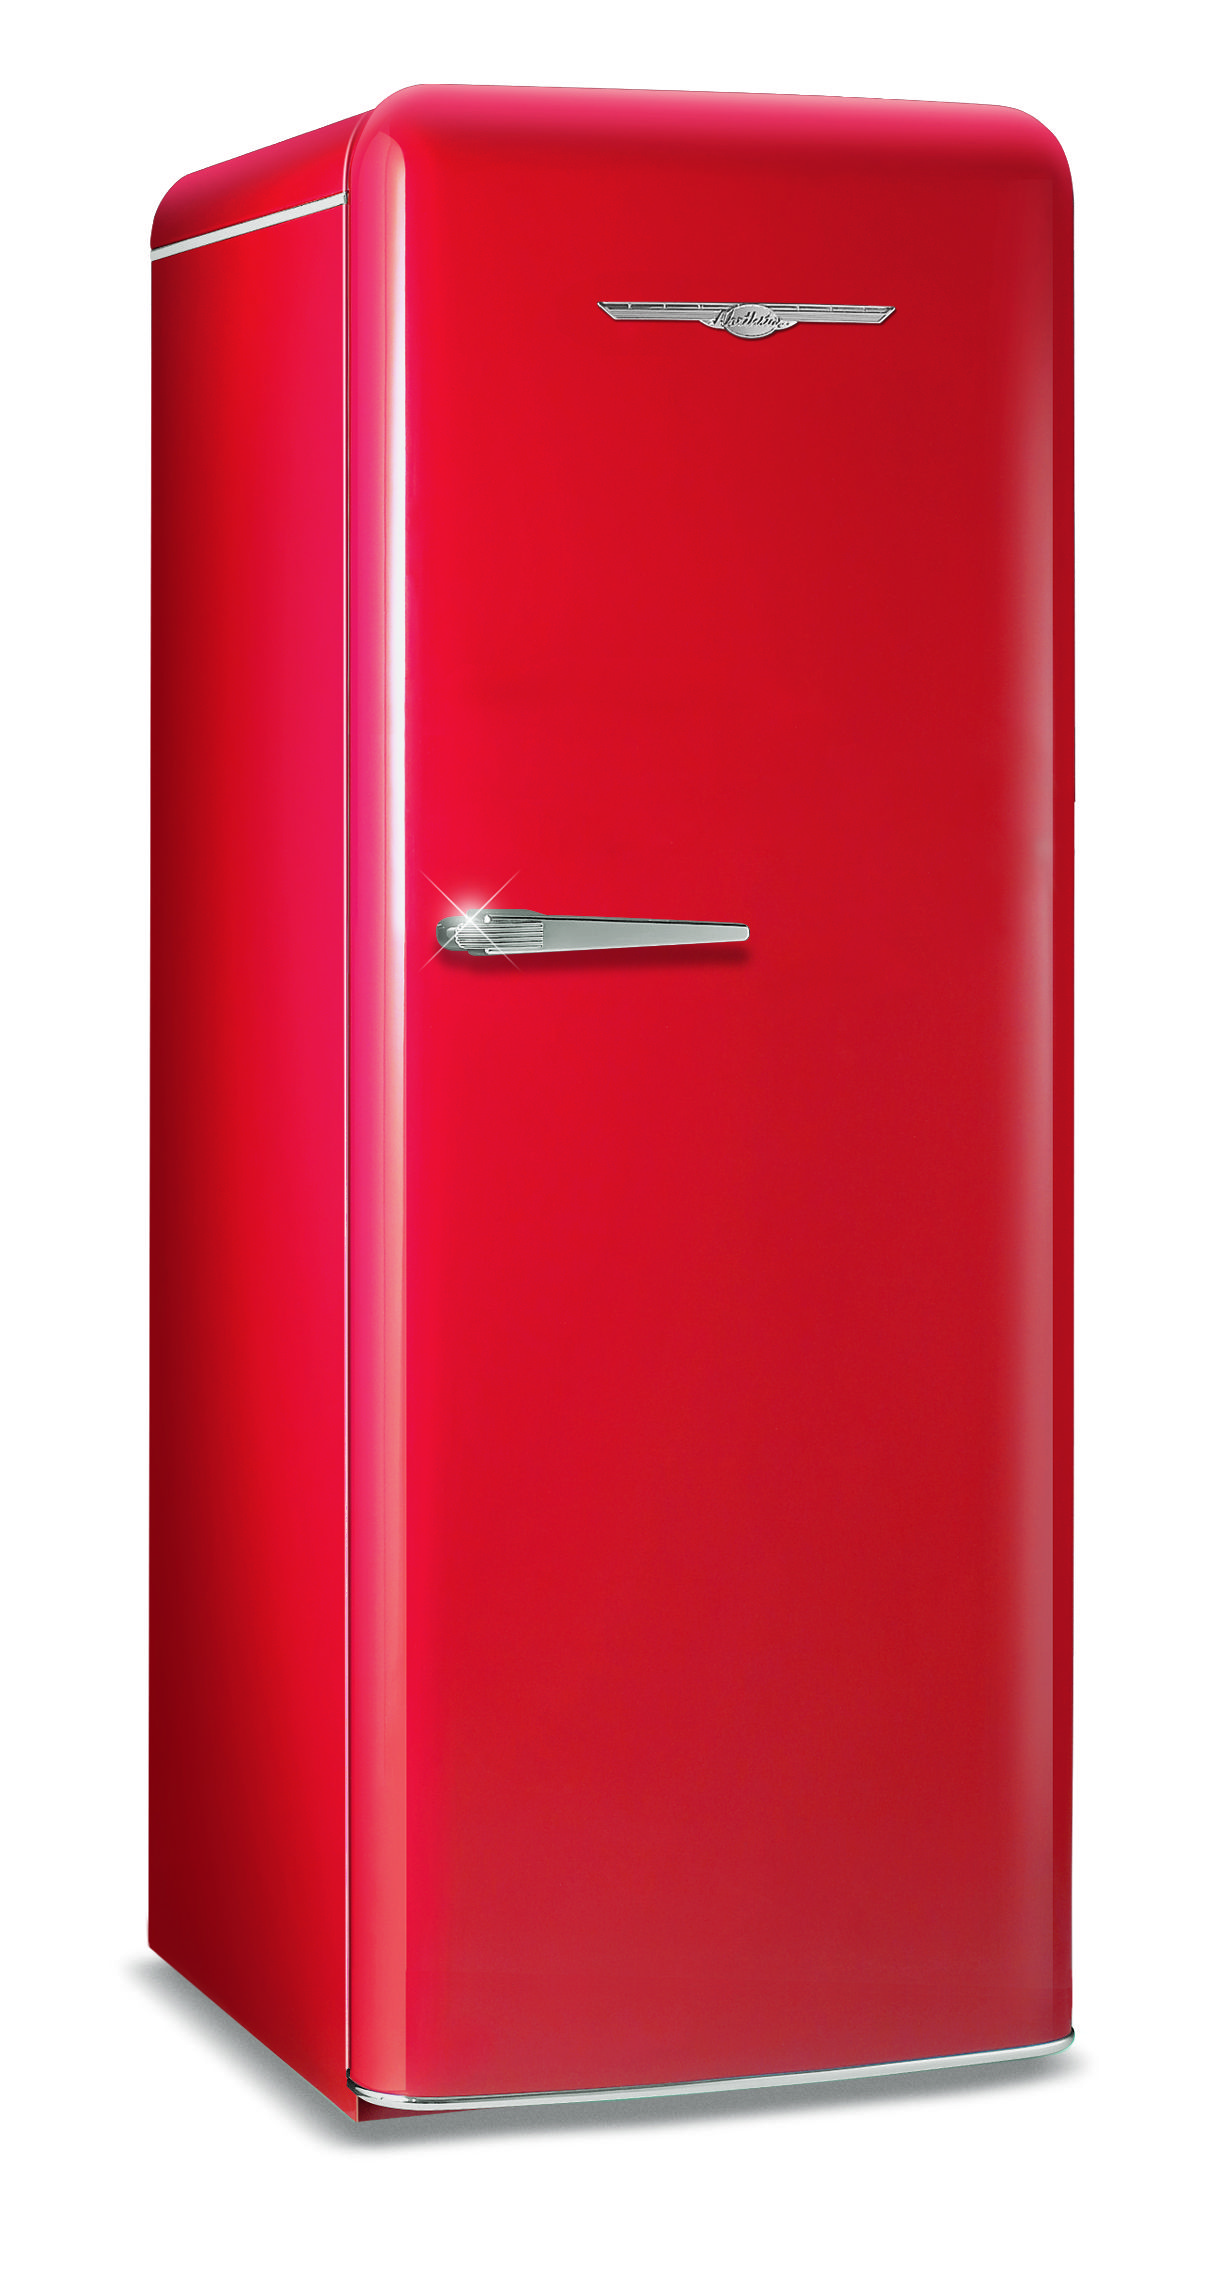 For those seeking a small retro look fridge for the kitchen try